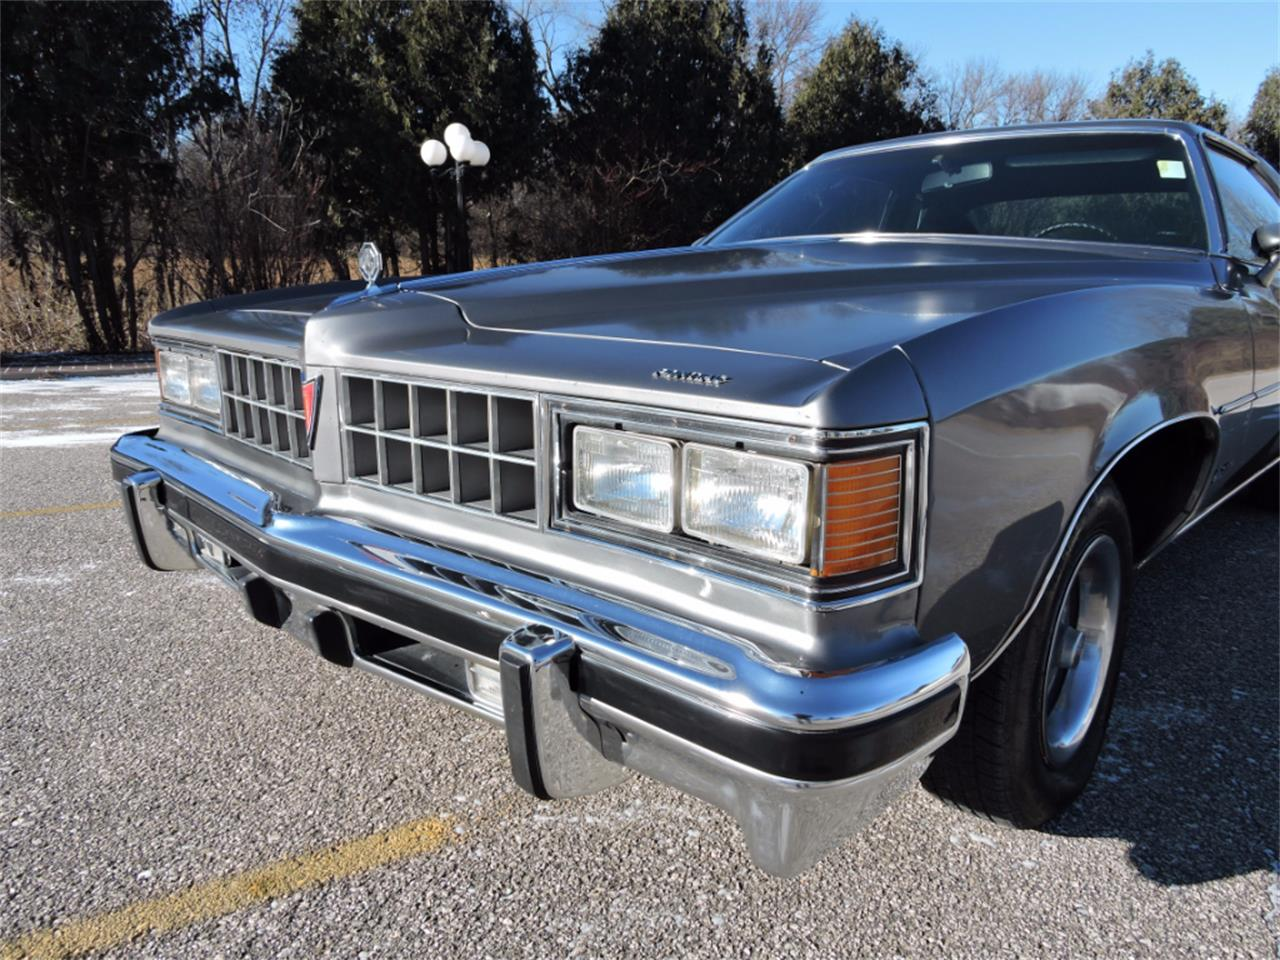 1977 Pontiac Grand LeMans for sale in Greene, IA – photo 38